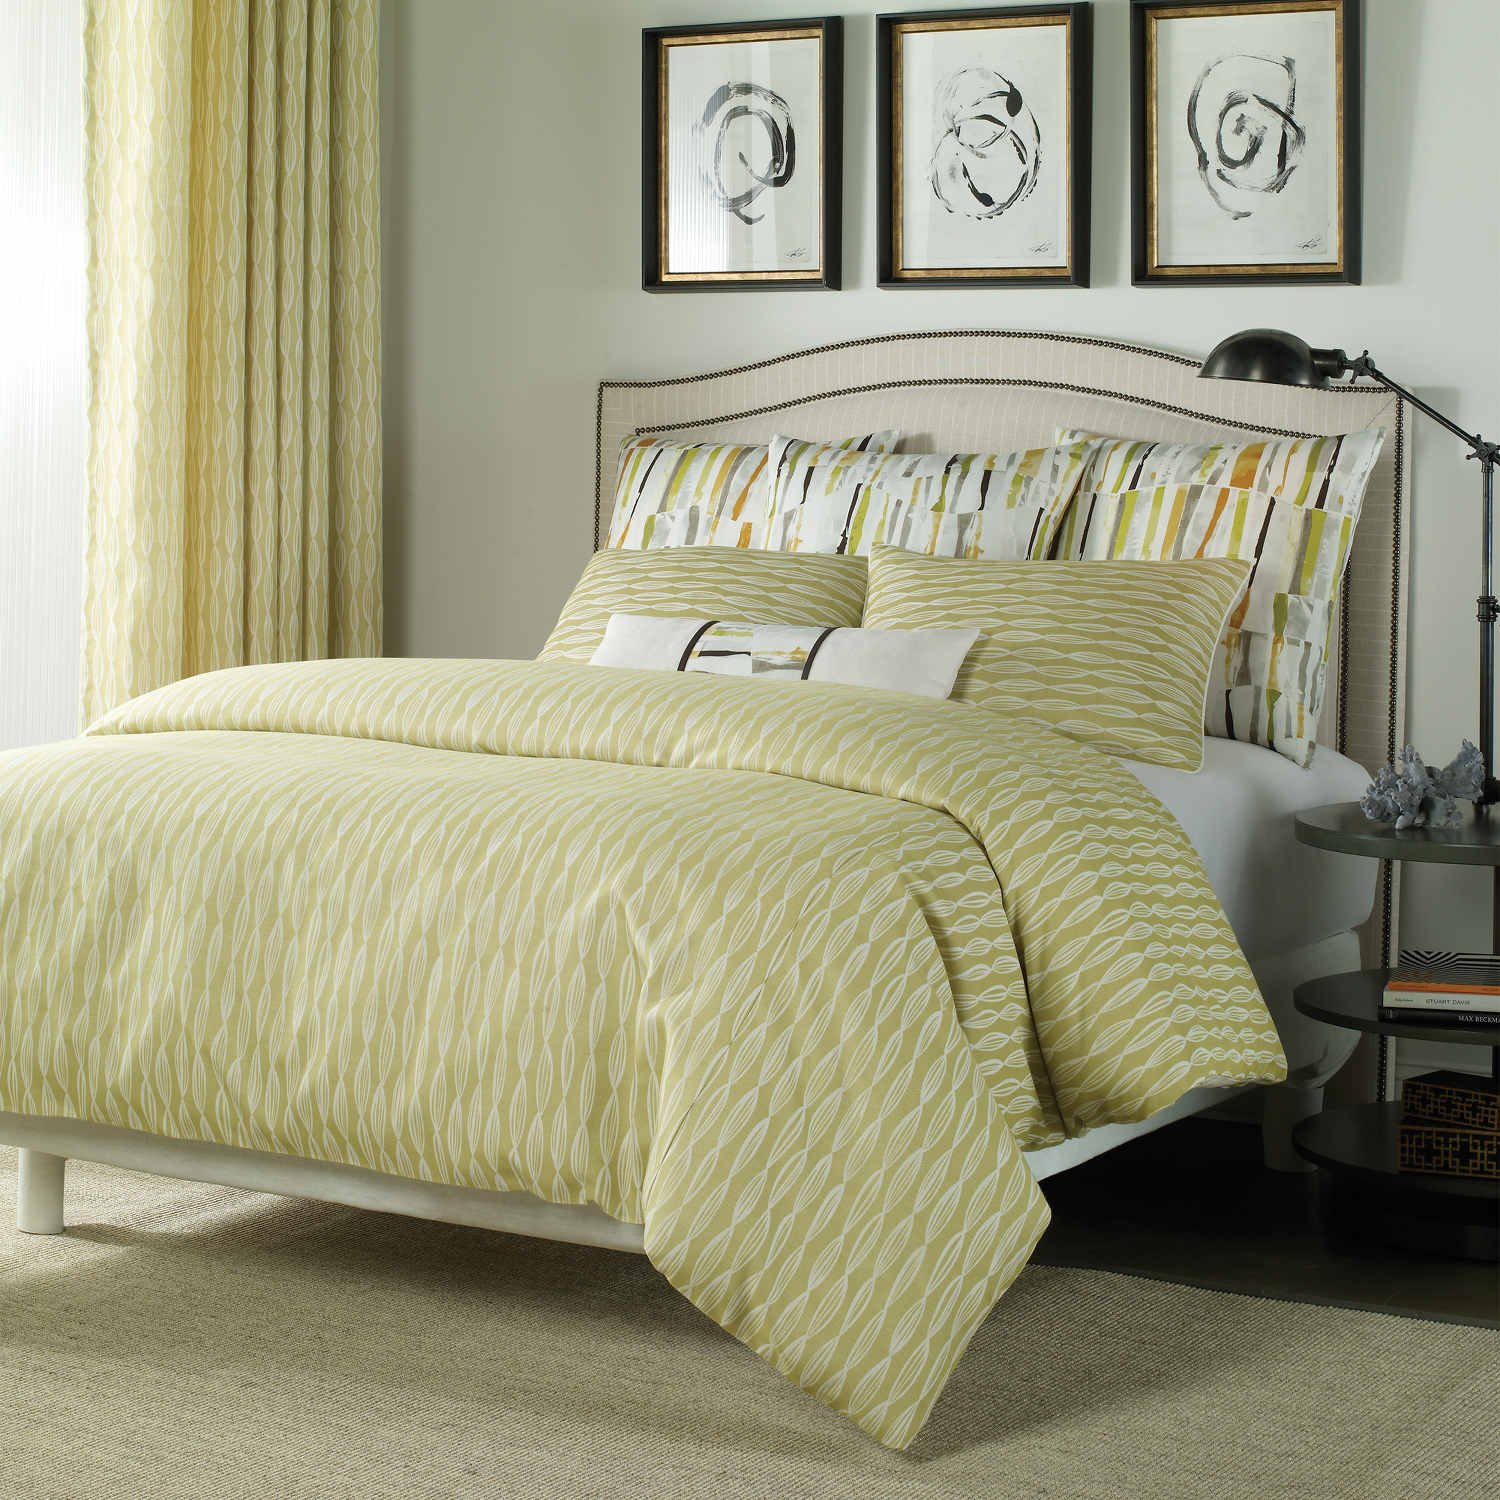 wildcat territory bedding jane collection -